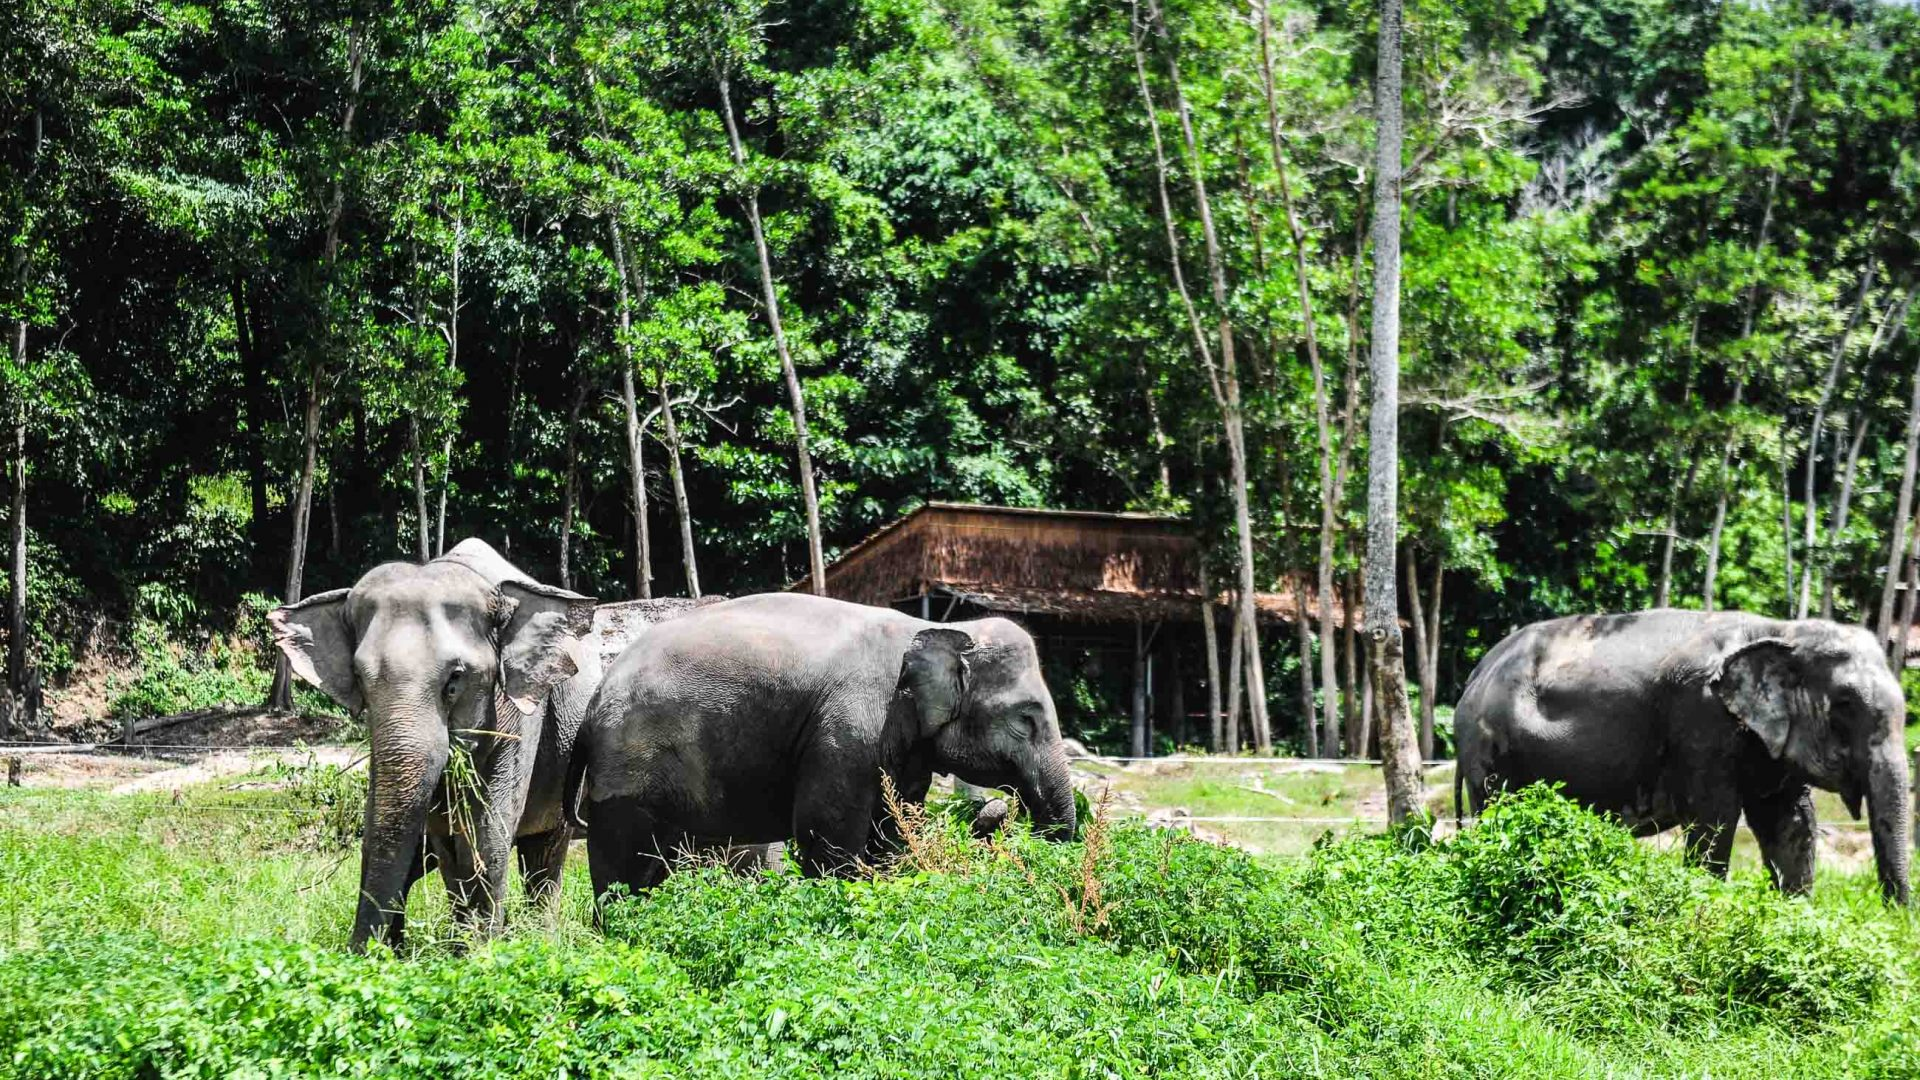 Elephants at the reserve.